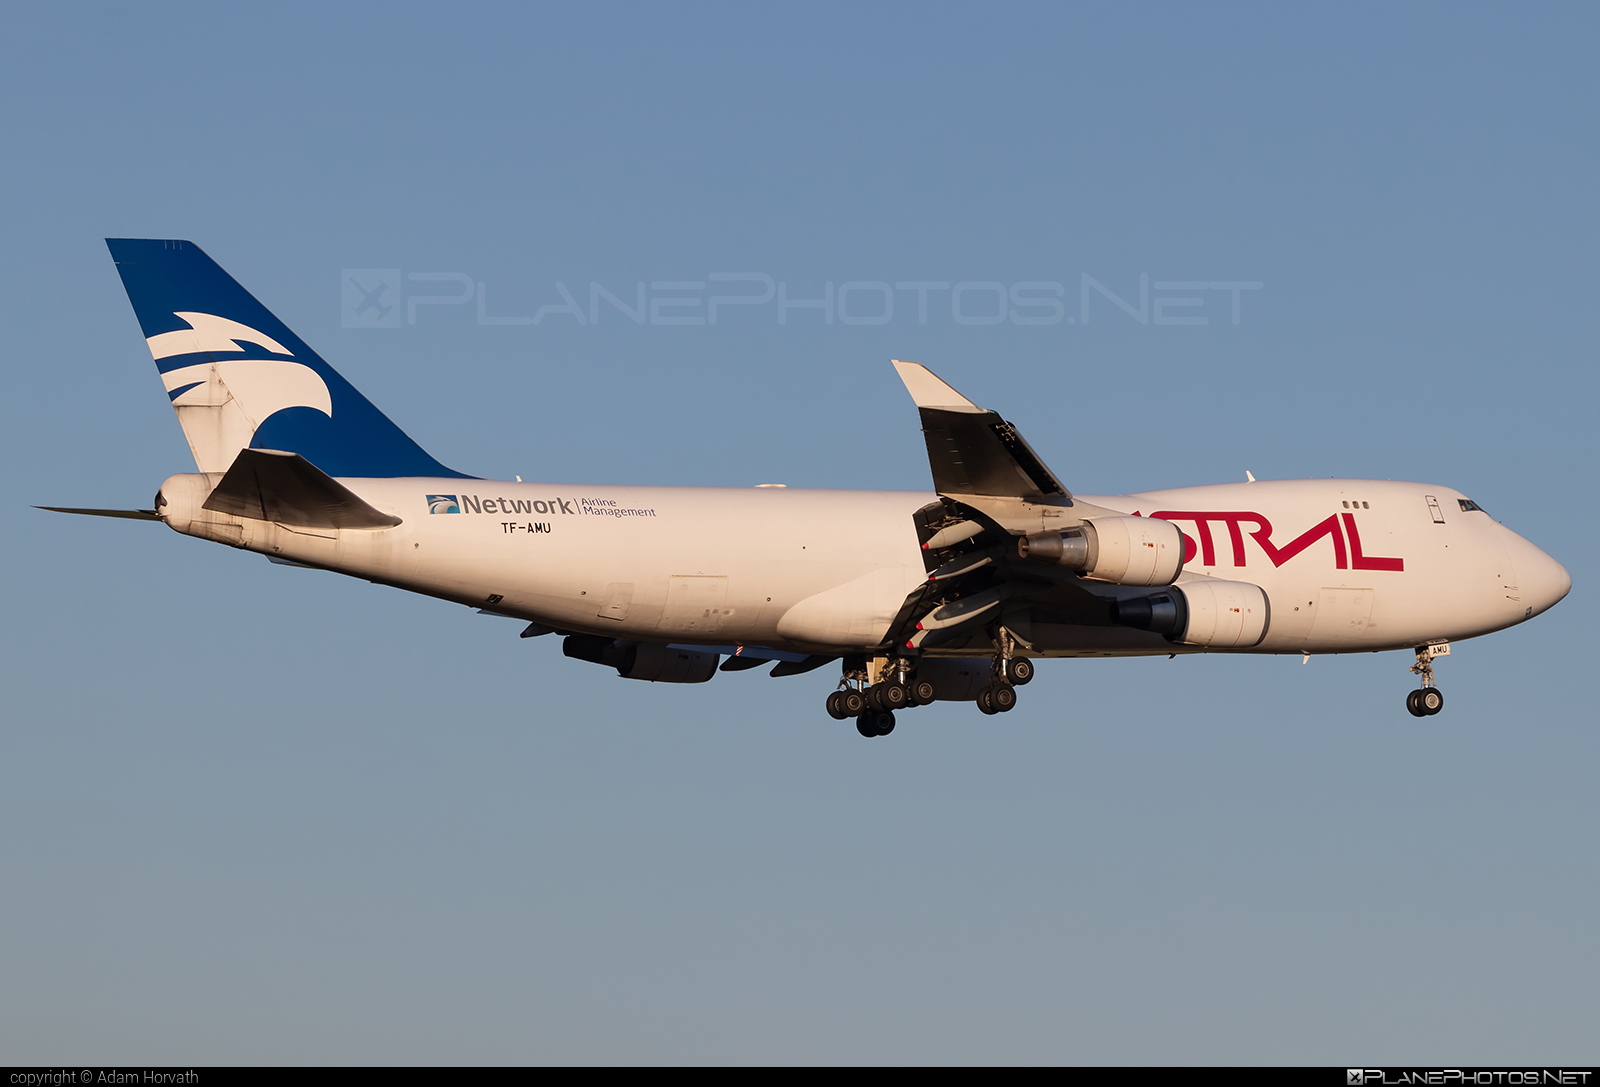 Boeing 747-400F - TF-AMU operated by Astral Aviation #astralaviation #b747 #boeing #boeing747 #jumbo